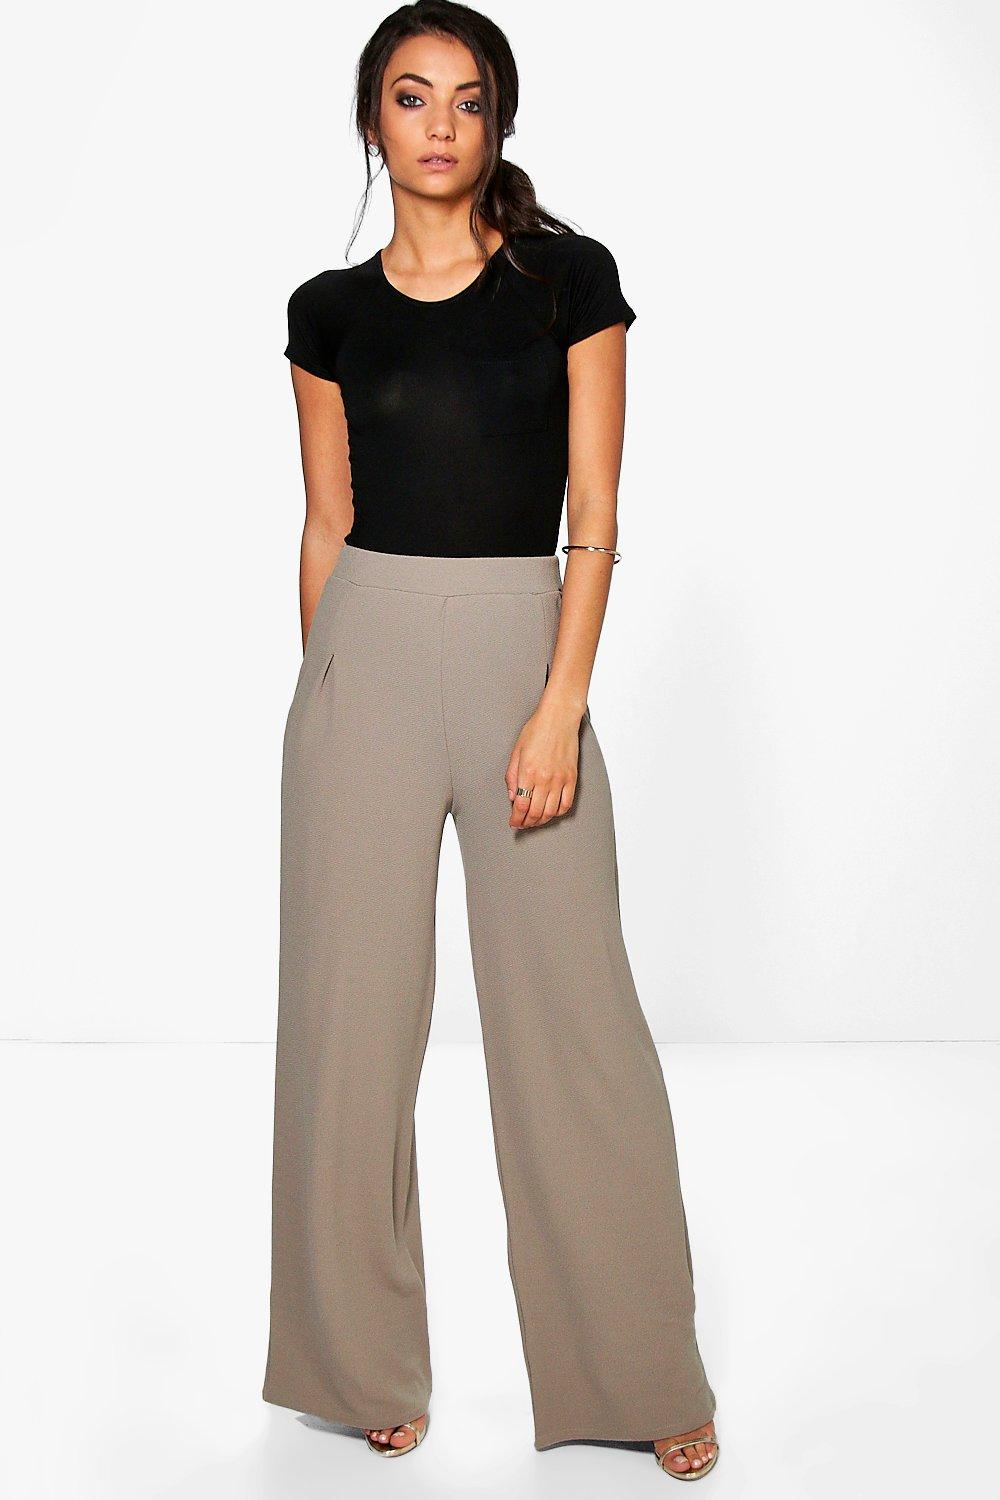 Now with more recycled fabrics—find a range of women's tall pants in 34